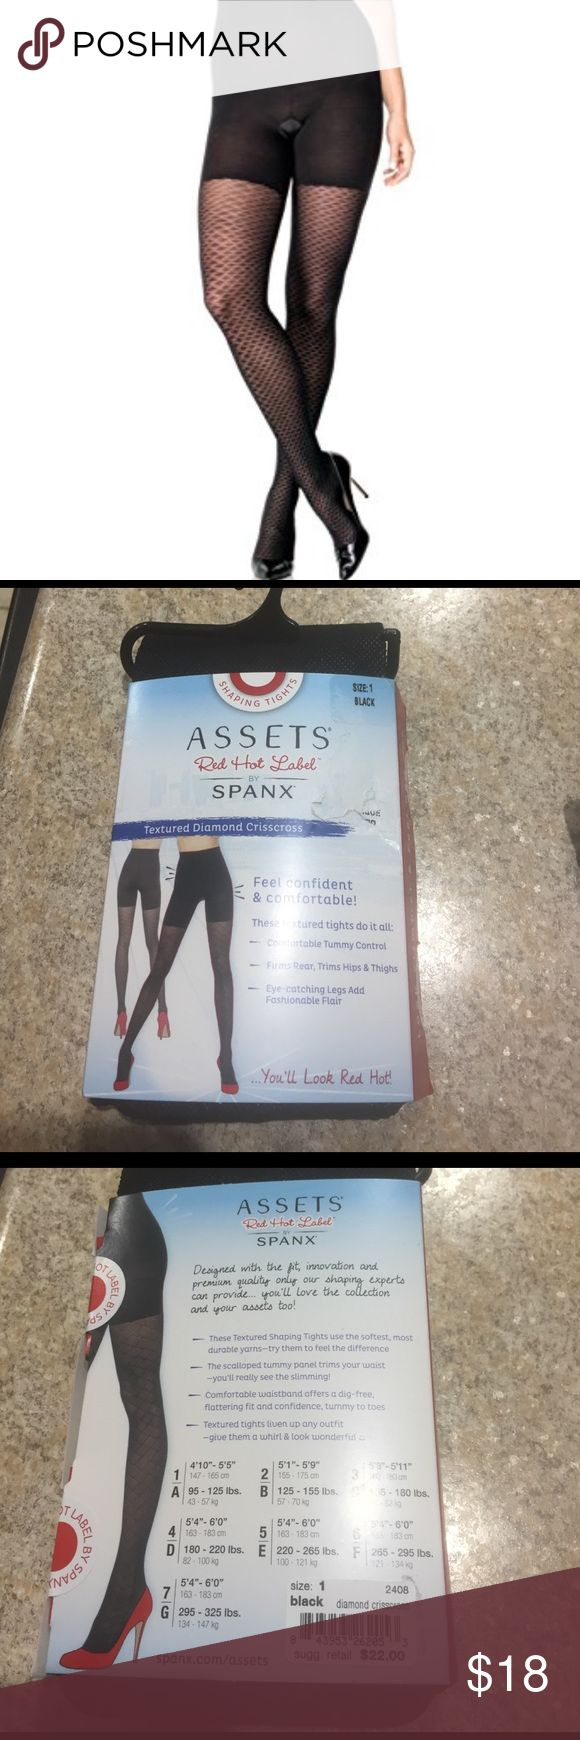 Spanx assets diamon crisscross tights shaping nwt Spanx assets diamon crisscross tights shaping nwt black various sizes available size chart above in photo SPANX Intimates & Sleepwear Shapewear